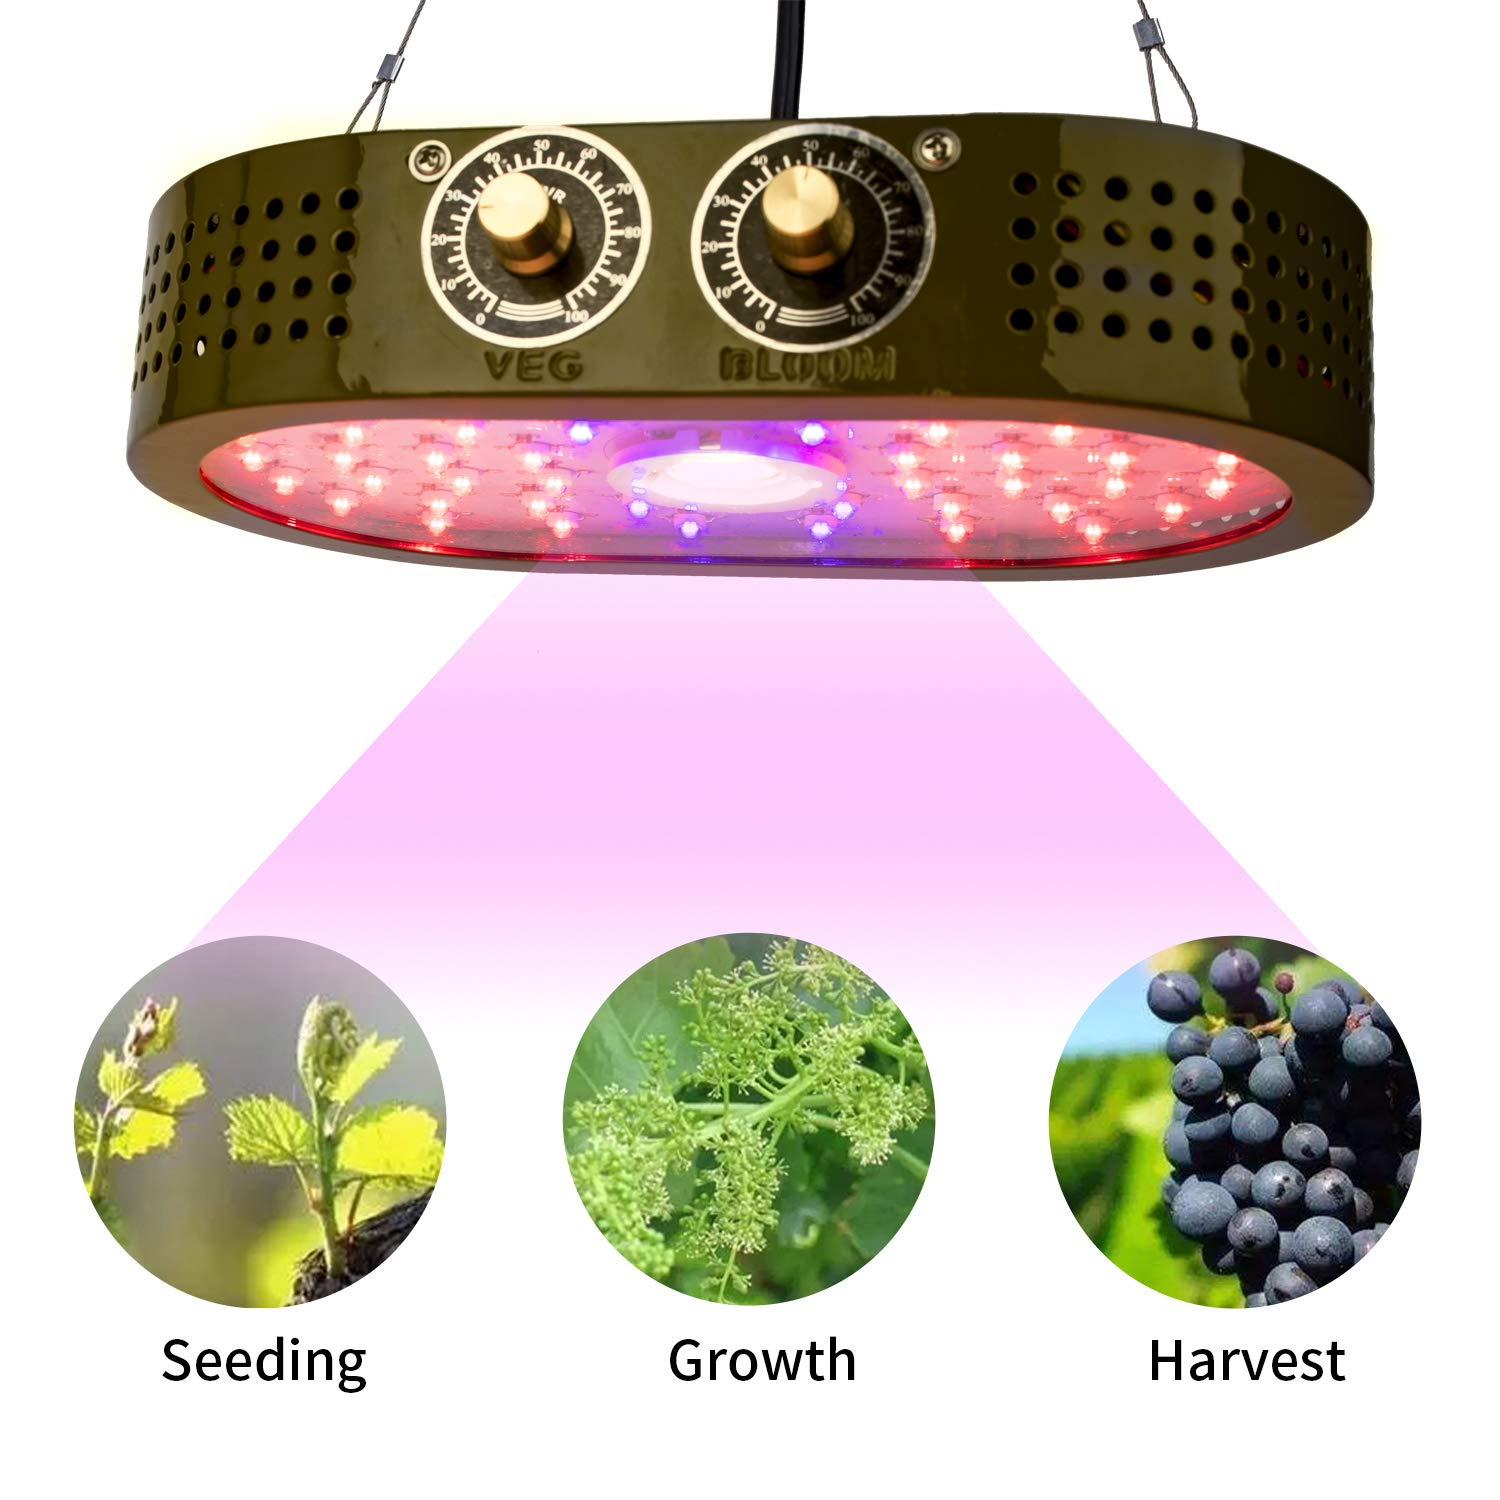 COB Grow Light 1100W Full Spectrum Lamp, Indoor Grow Lights for Veg and Flower Plants, Double Adjustable Knobs Plant Light for Greenhouse Double-chip 10W LEDs ,Benflor